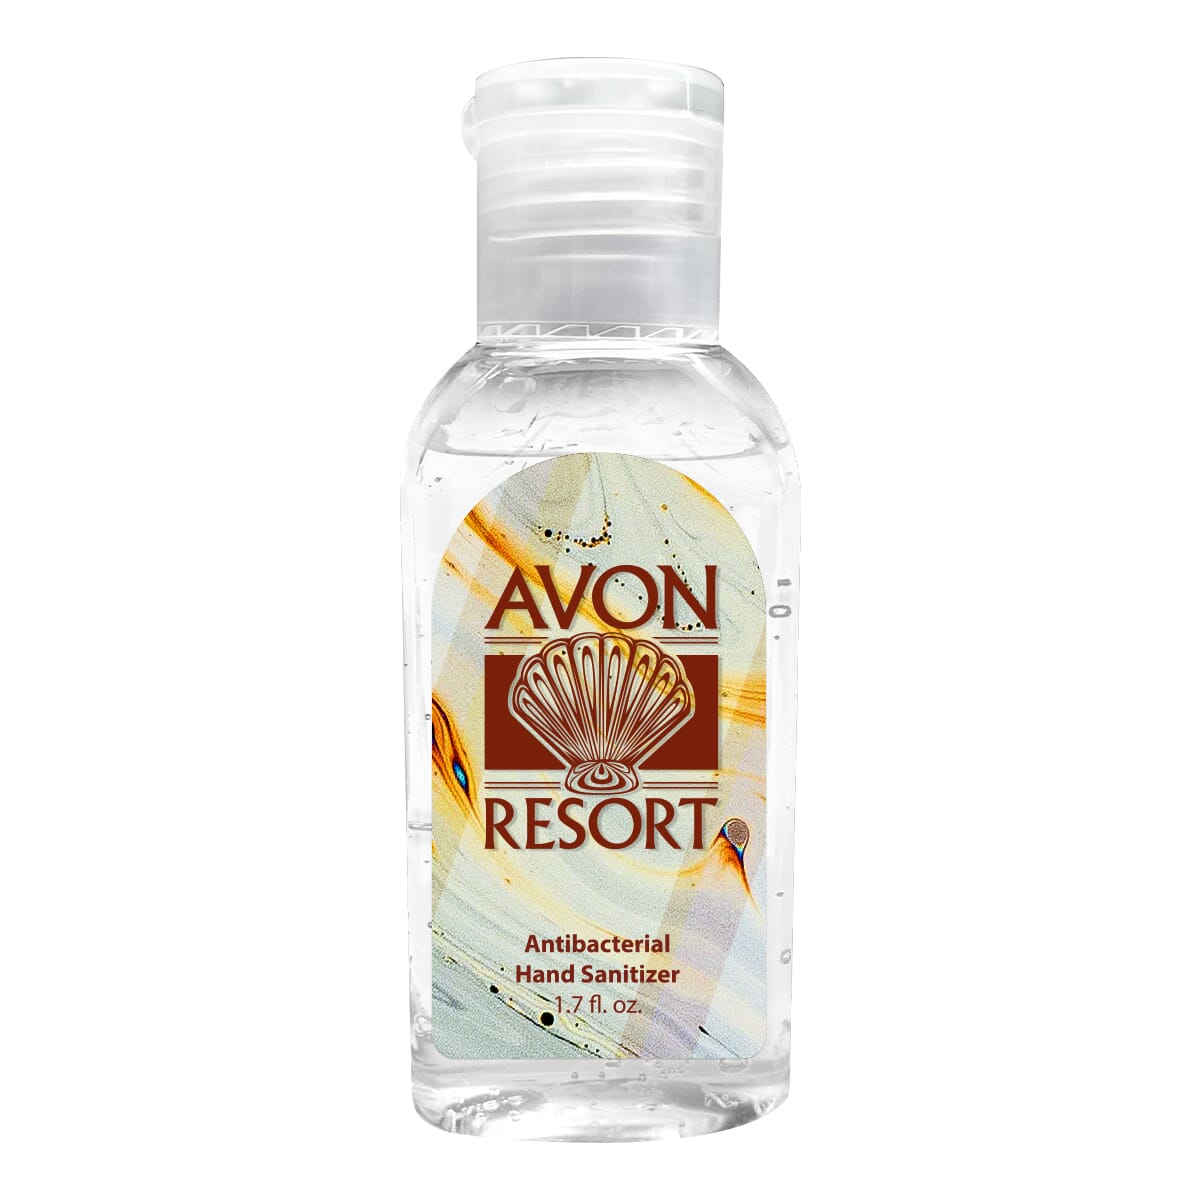 Travel size hand sanitizer with customized label